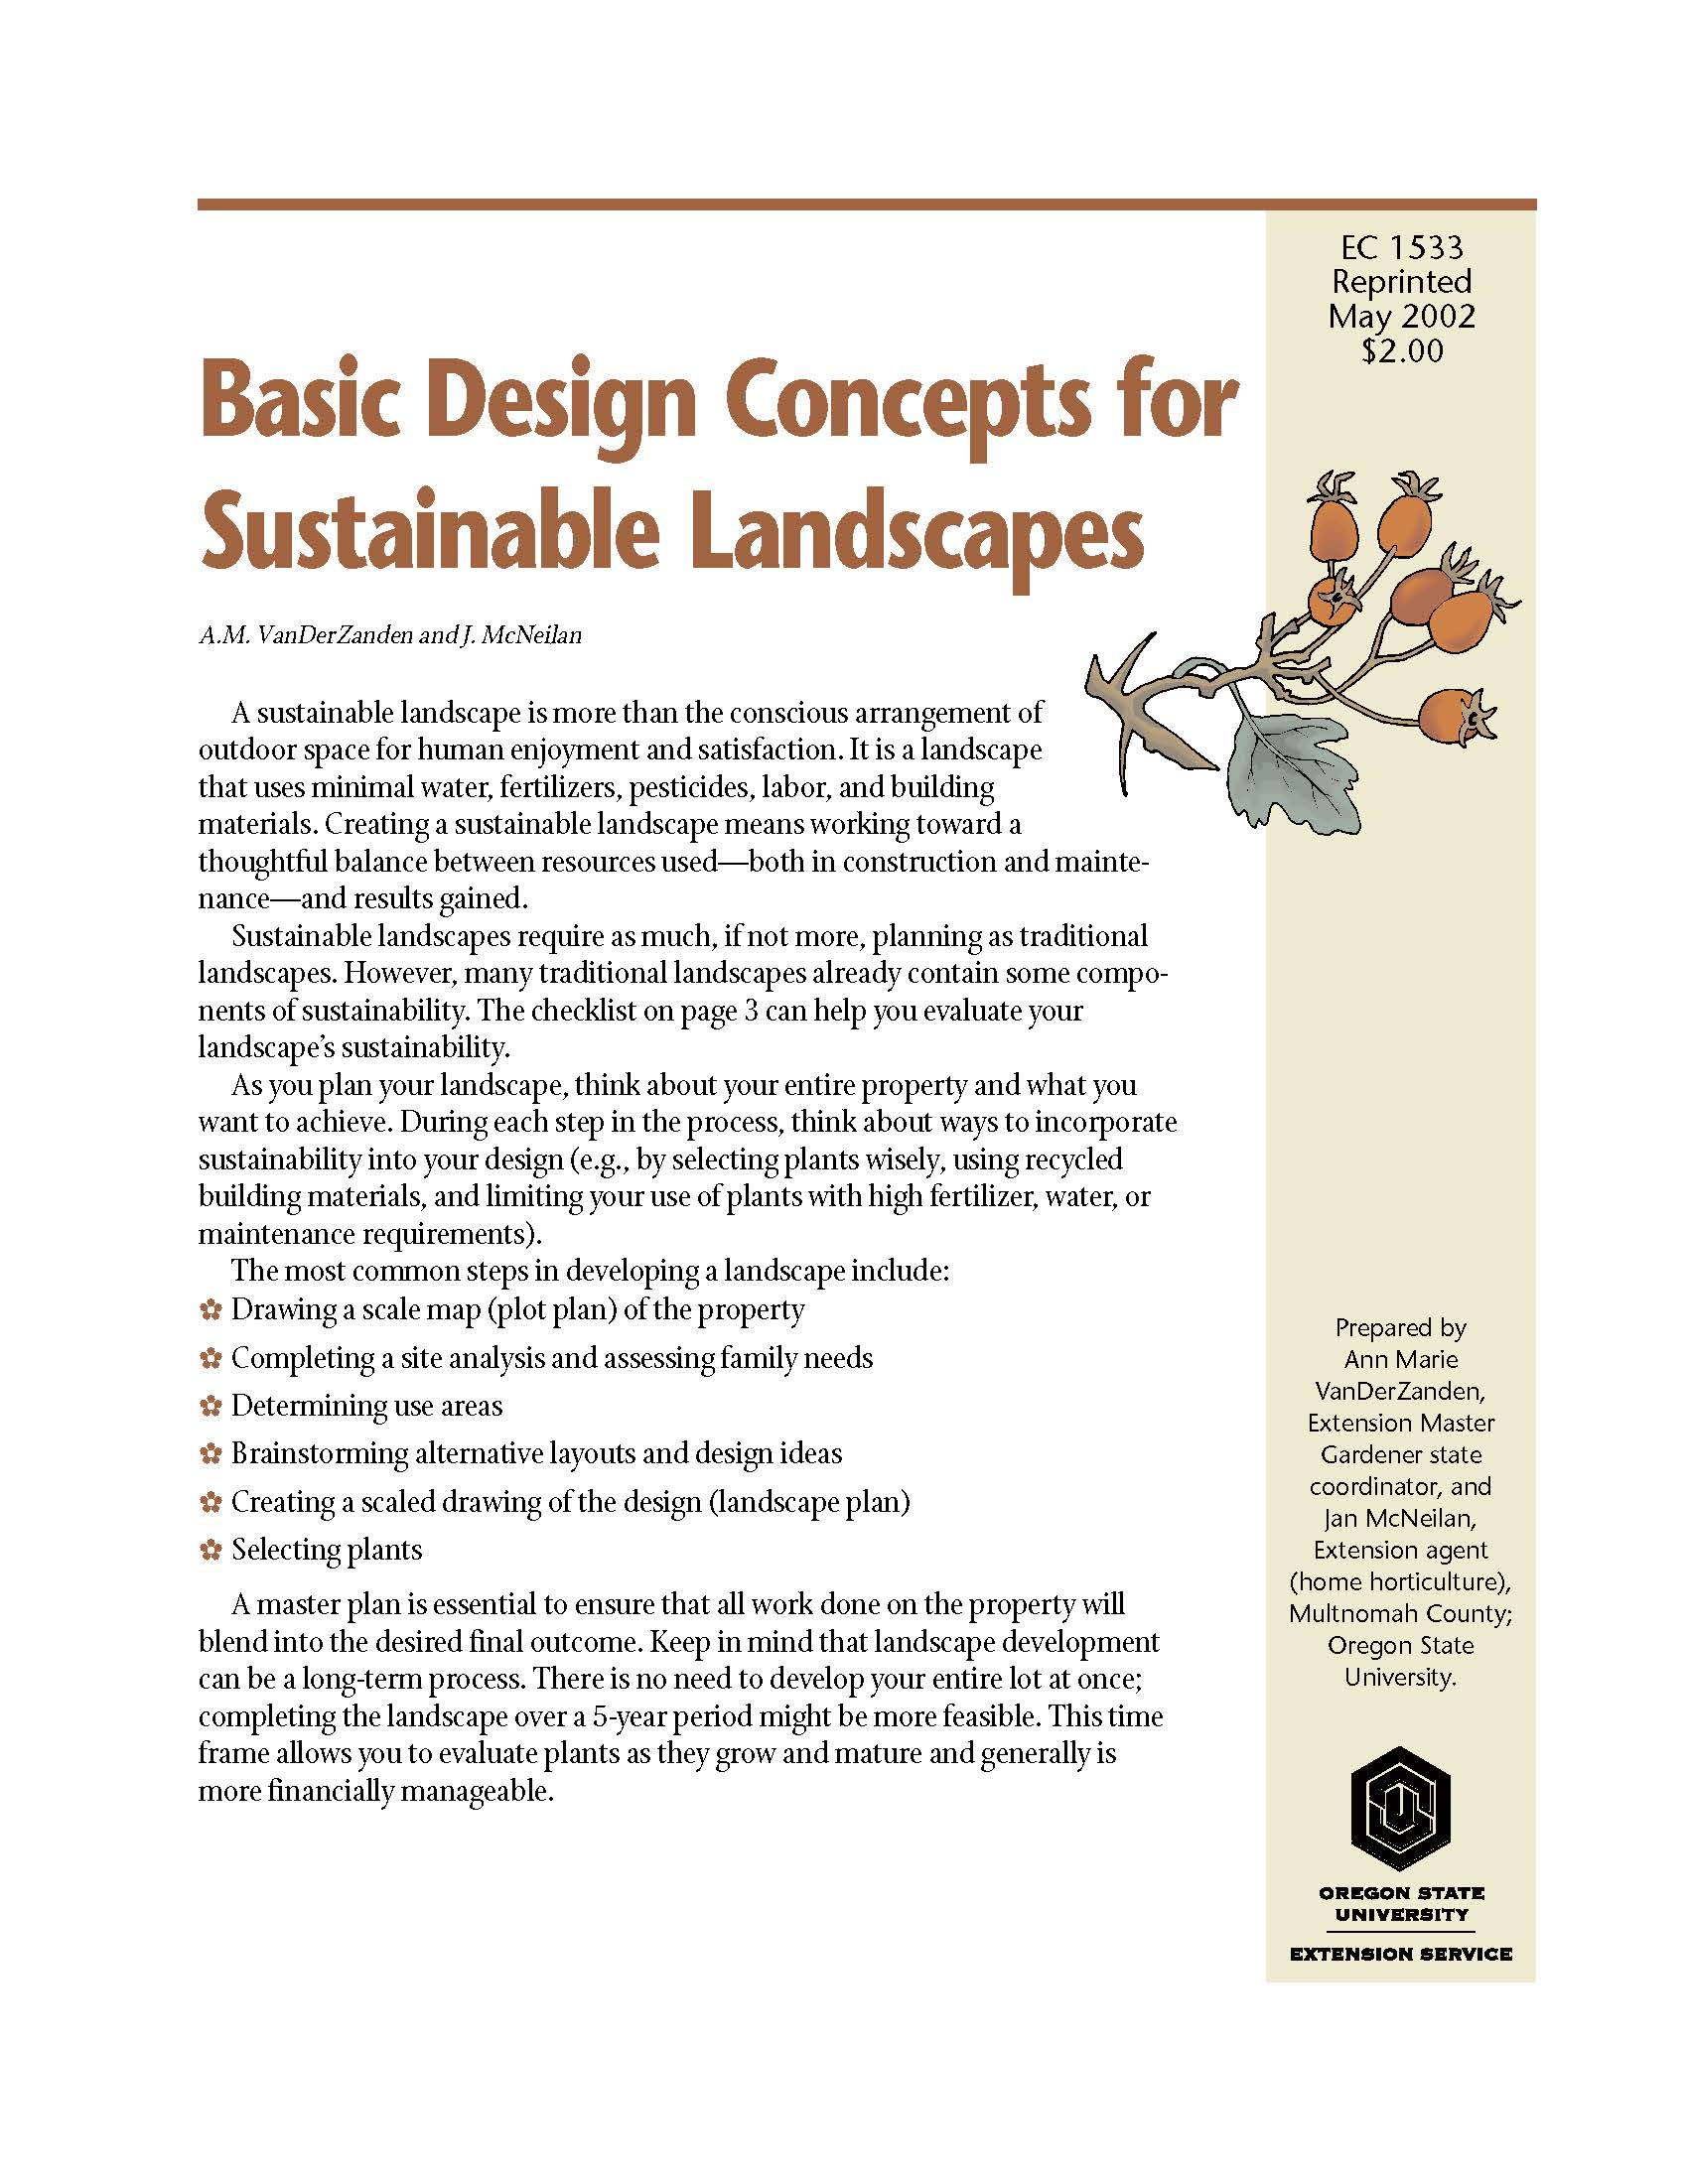 Basic Design Concepts For Sustainable Landscapes